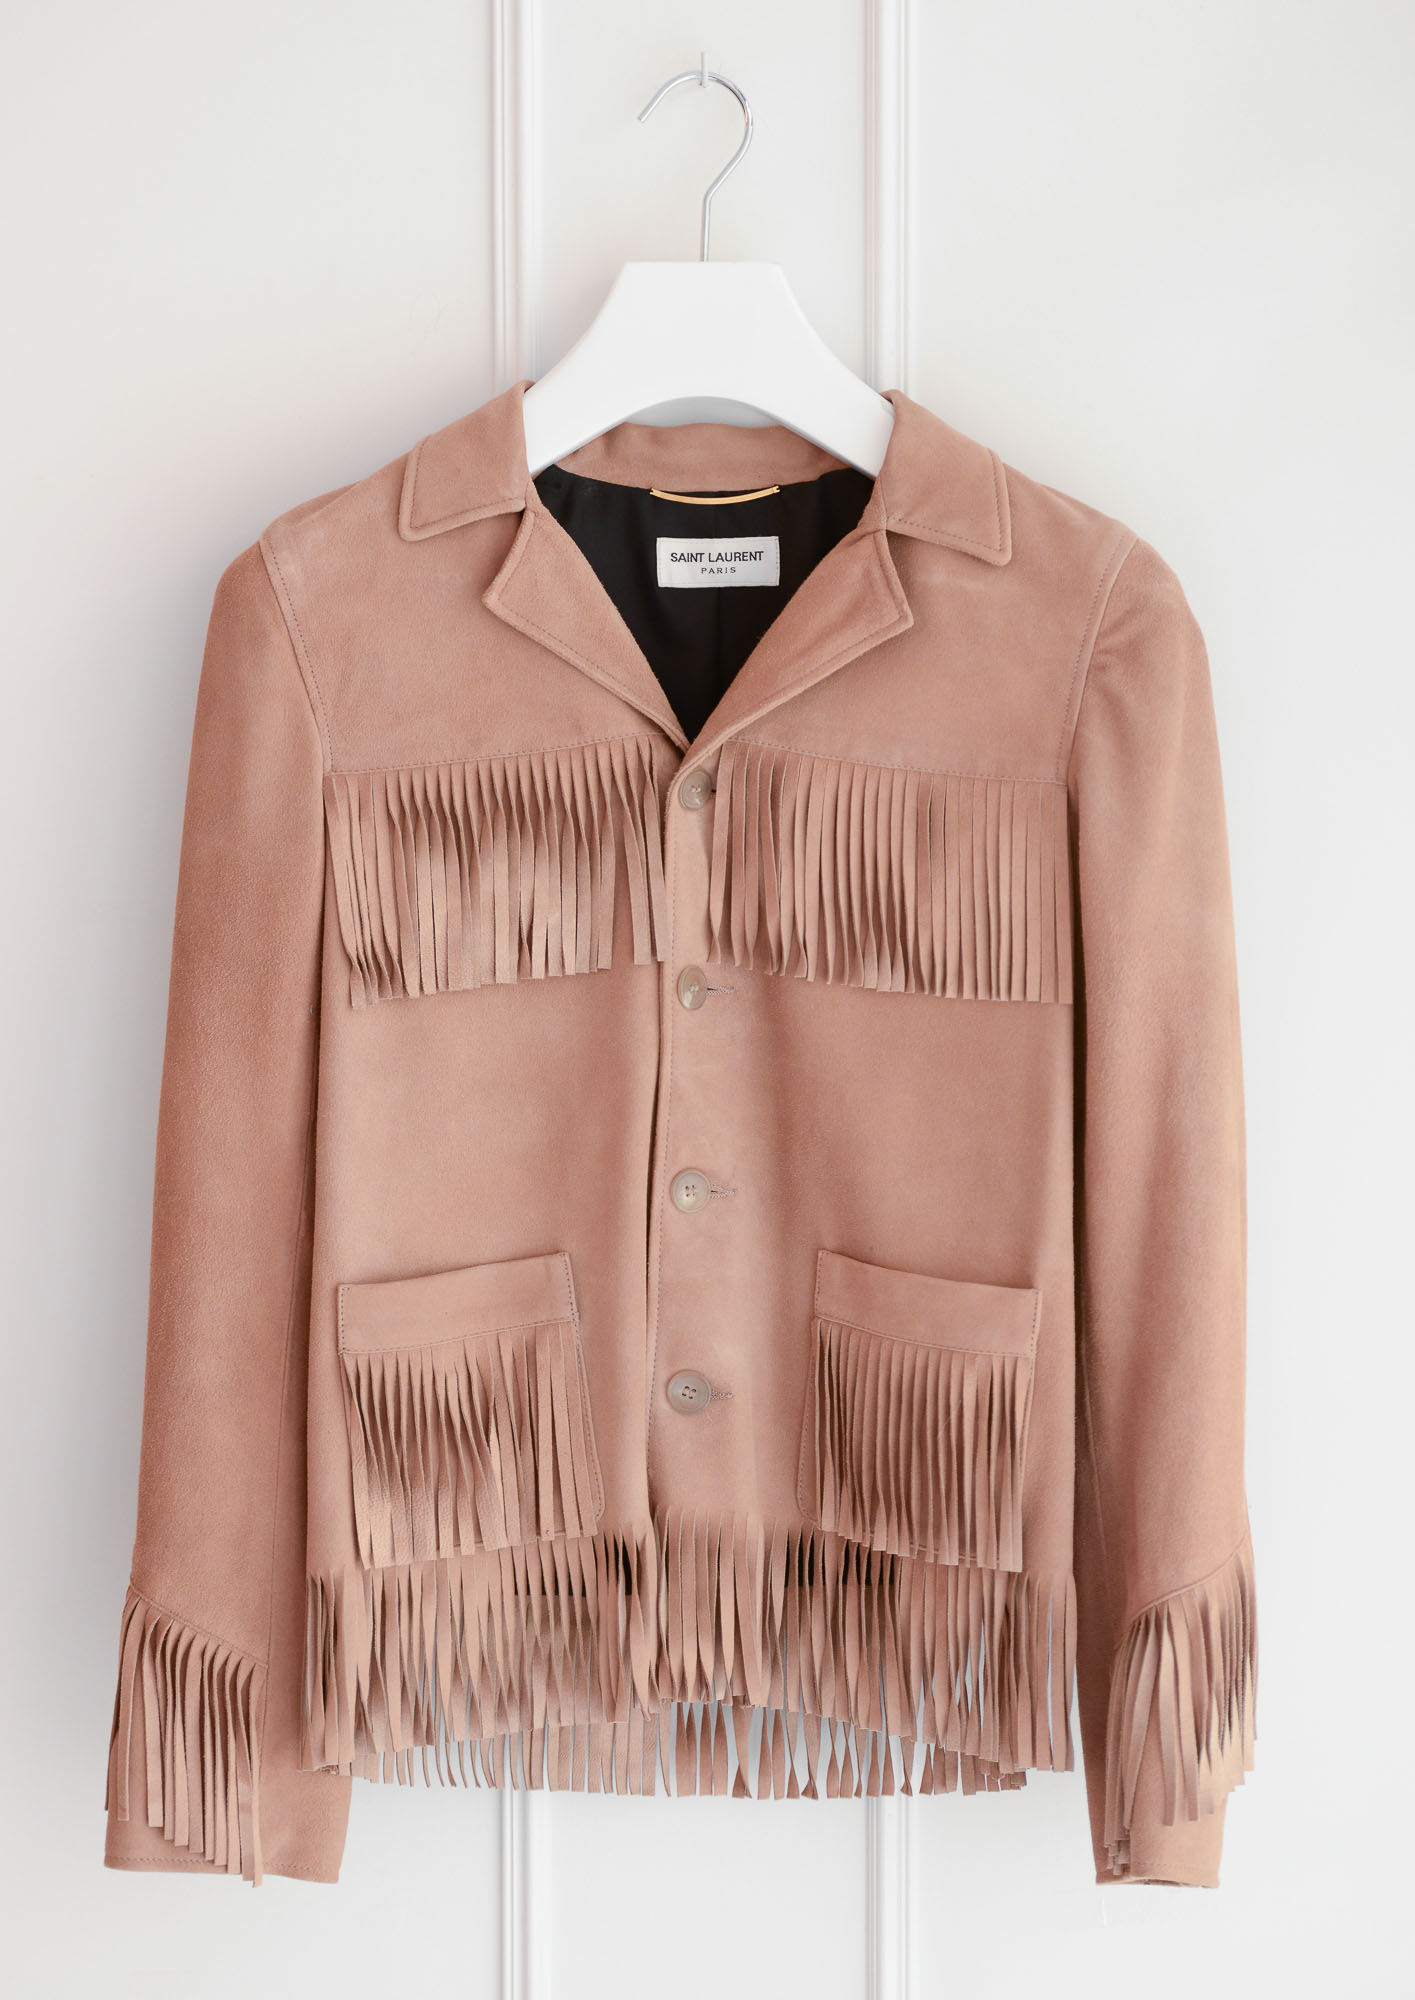 Saint Laurent Paris-Veste Camel à Franges - Departement Feminin